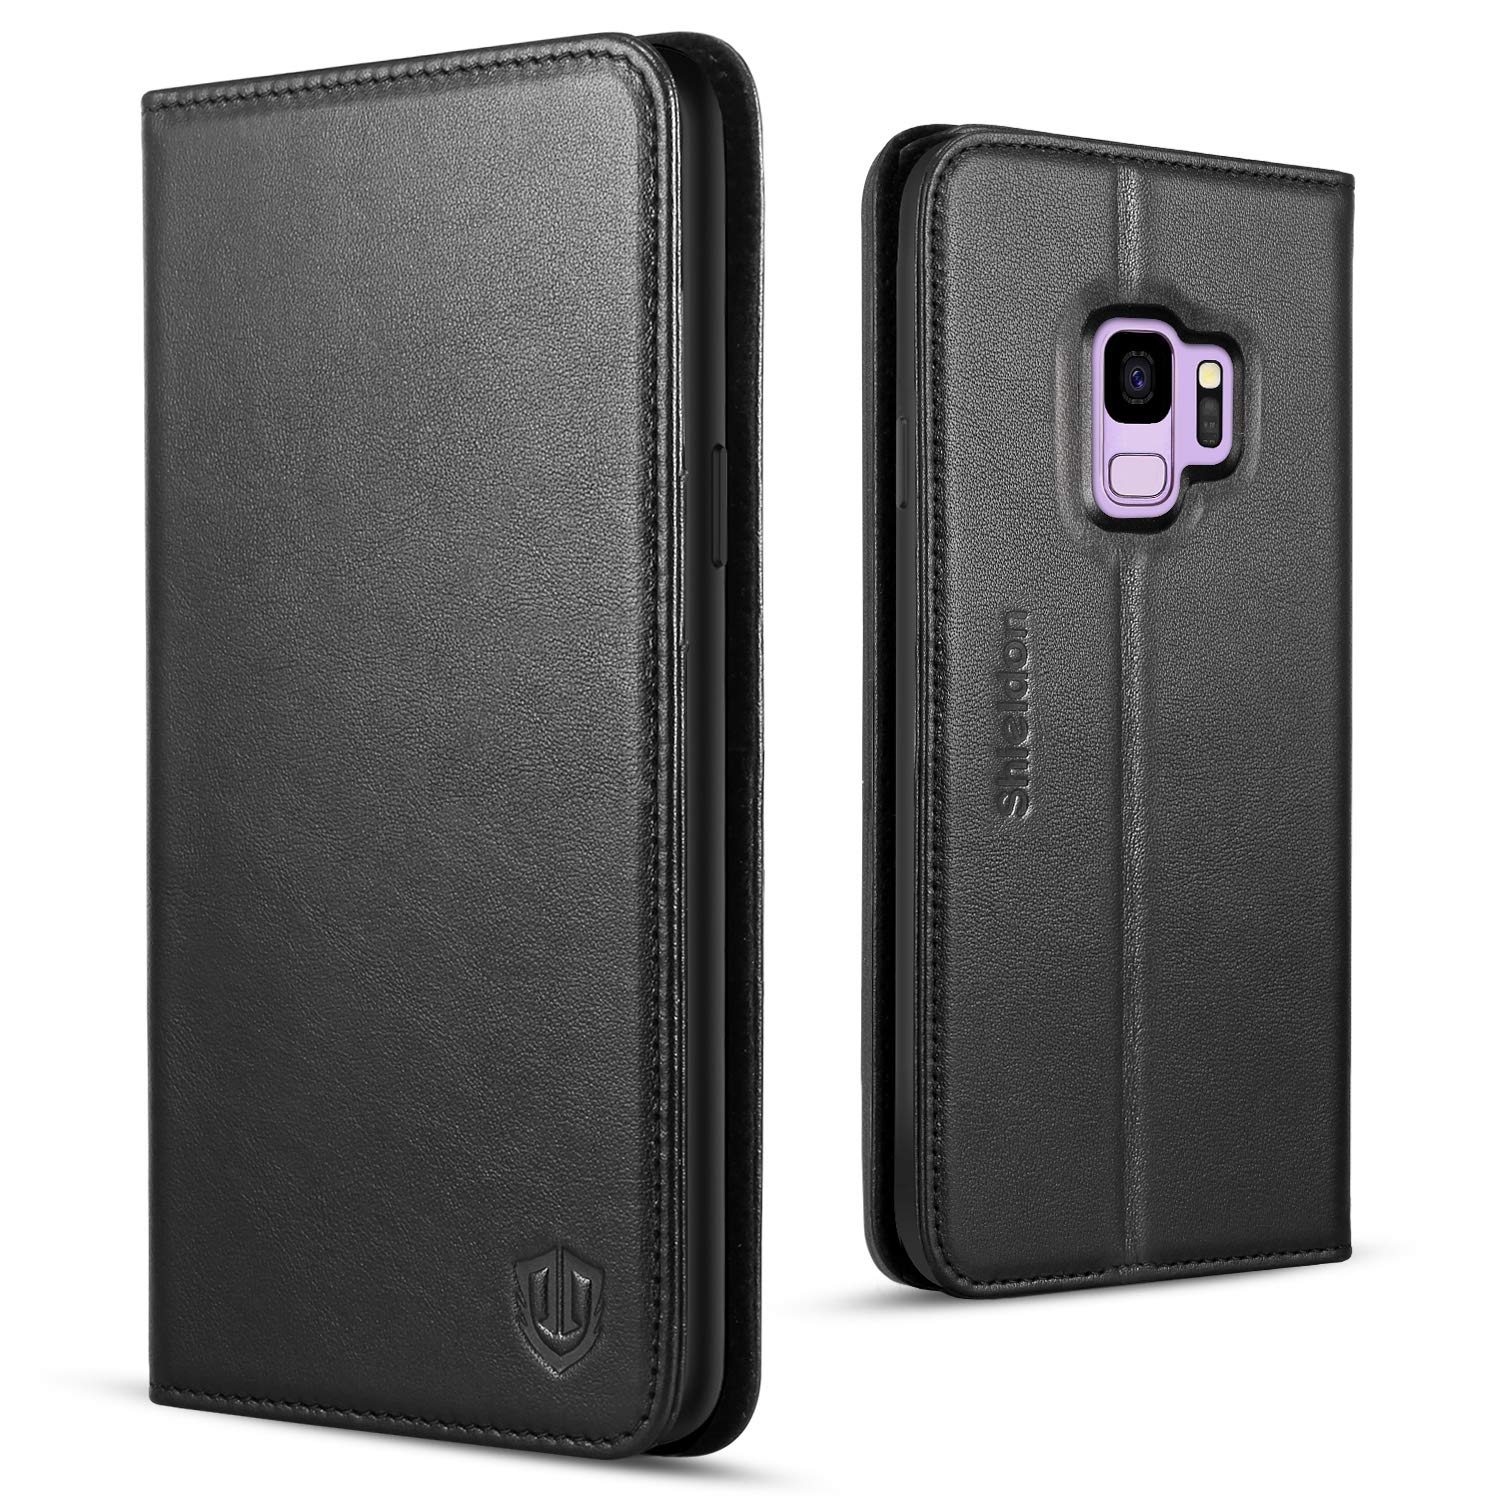 Galaxy S9 Case, SHIELDON Genuine Leather Premium Galaxy S9 Wallet Case [Folio Cover] [Stand Feature] with Credit Card Slots Full Protection Case Compatible with Galaxy S9 5.8'' - Black